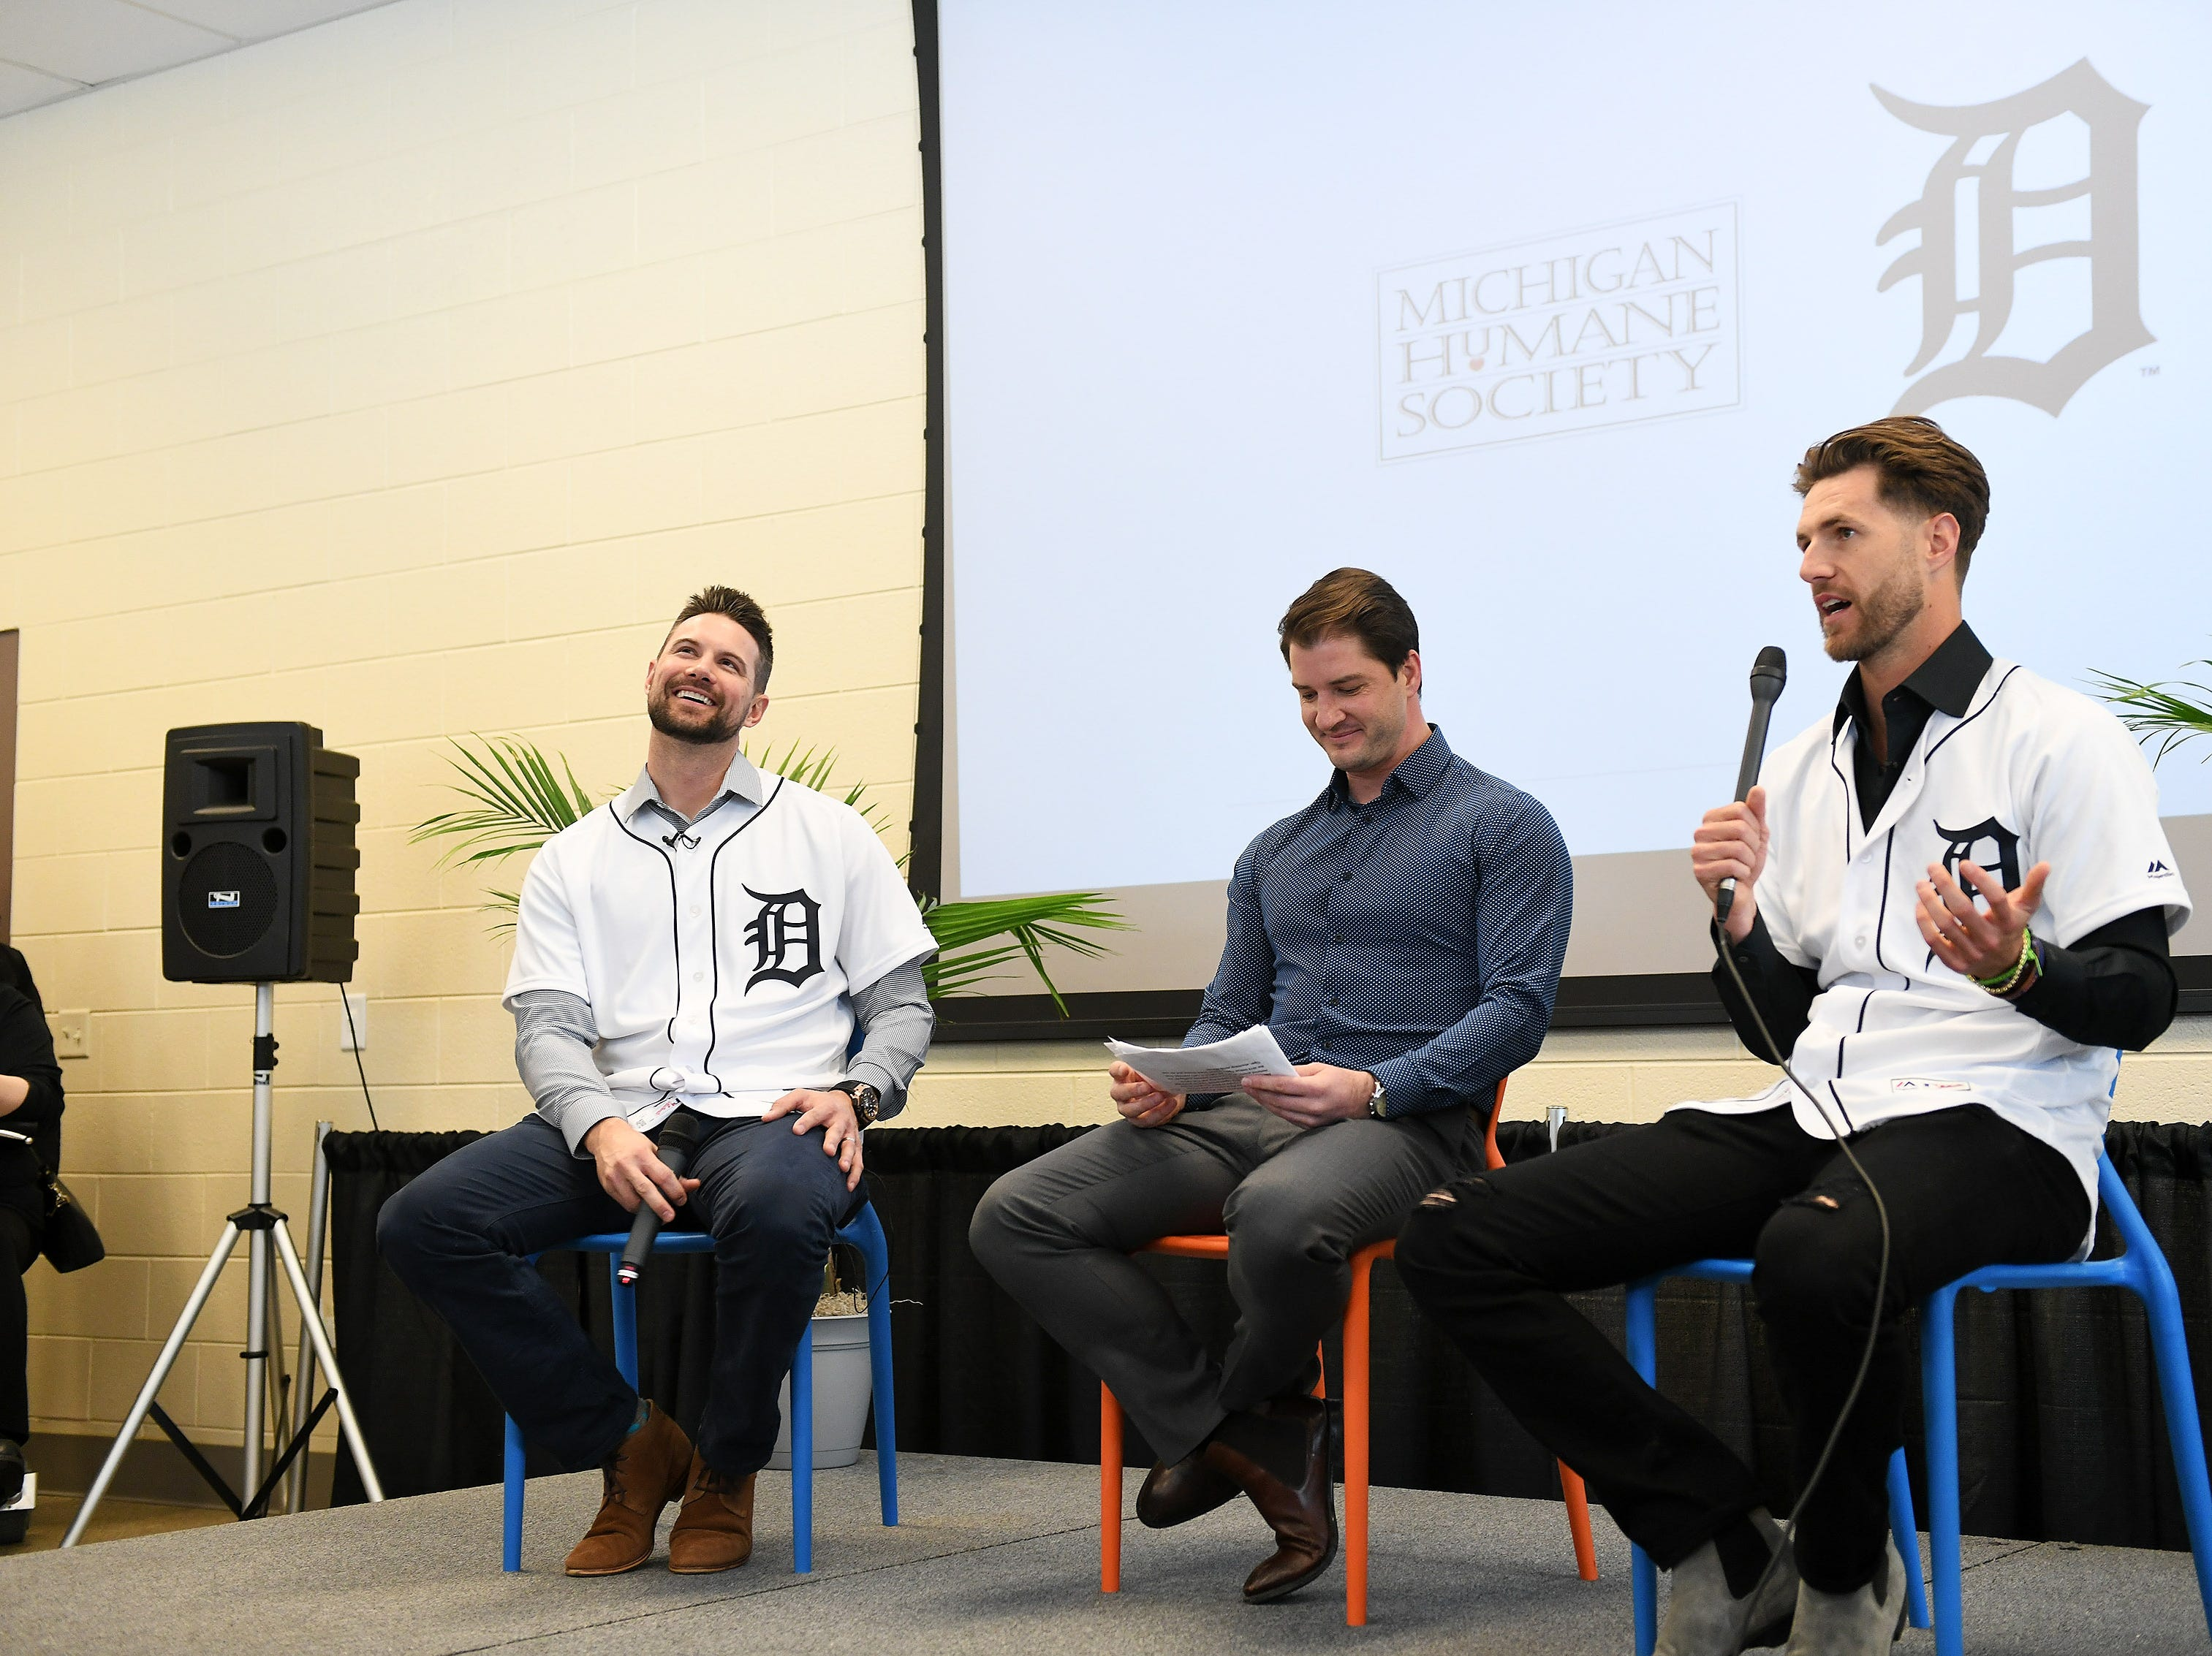 Tigers' Jordy Mercer, left, and Shane Greene, right, answer questions from the people gathered, moderated by Johnny Kane from Fox Sports Detroit, center, at the Michigan Humane Society.